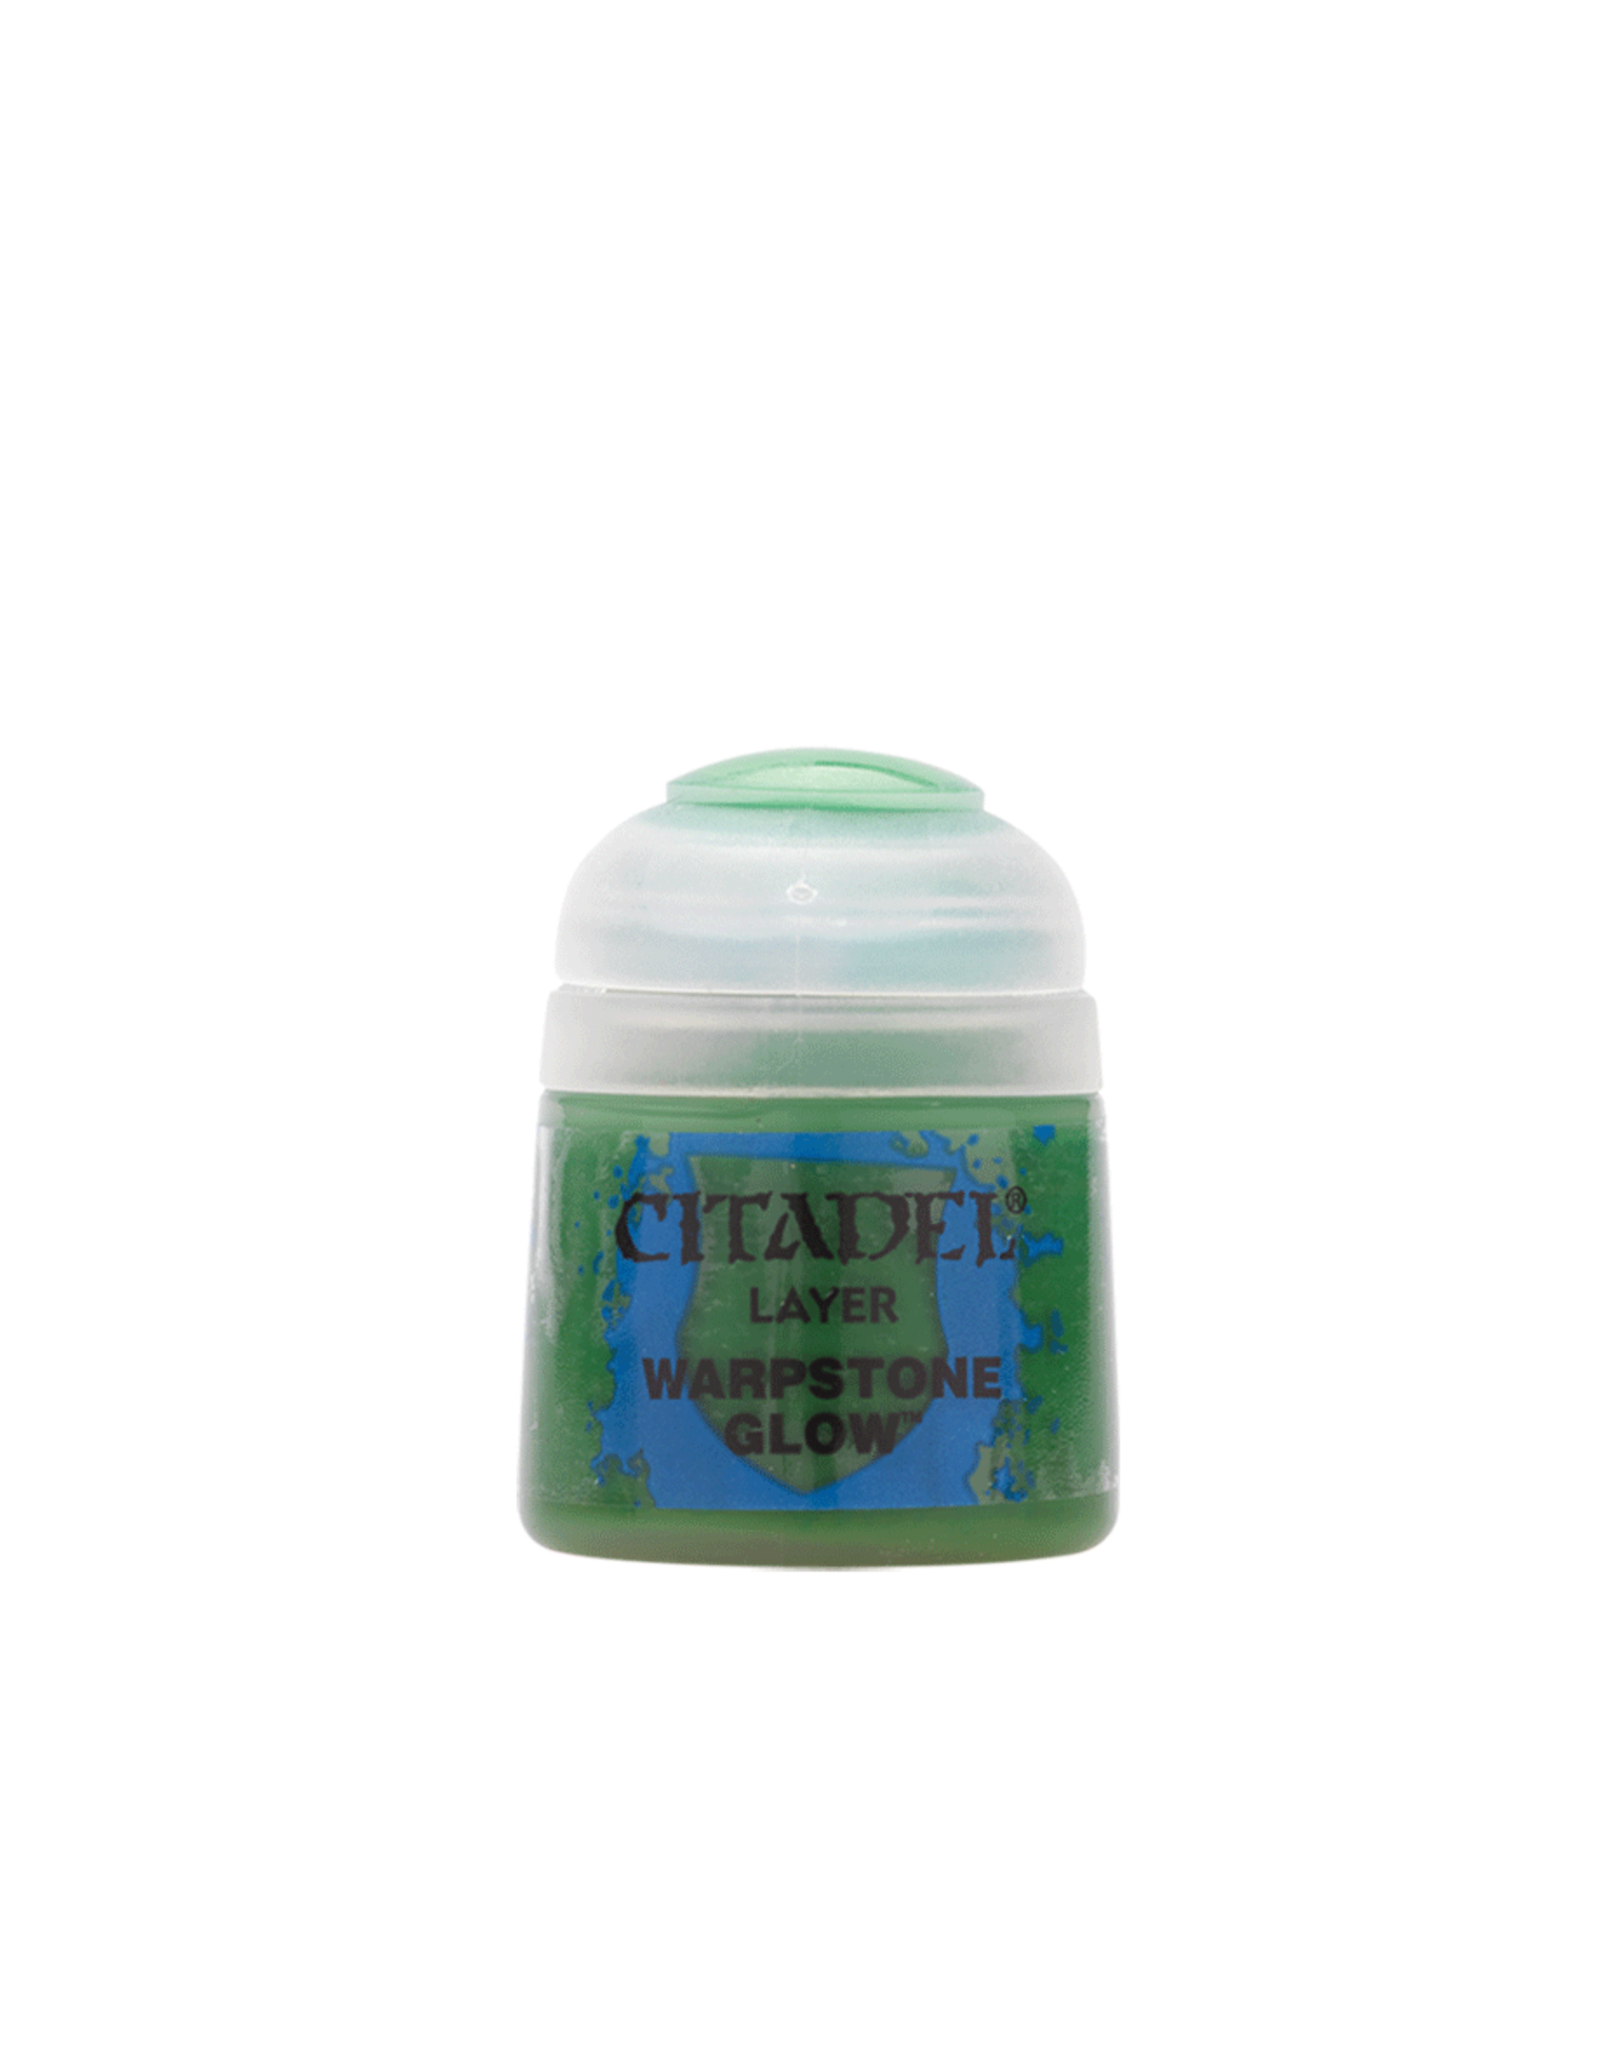 Games-Workshop Citadel paint WARPSTONE GLOW (12ML)